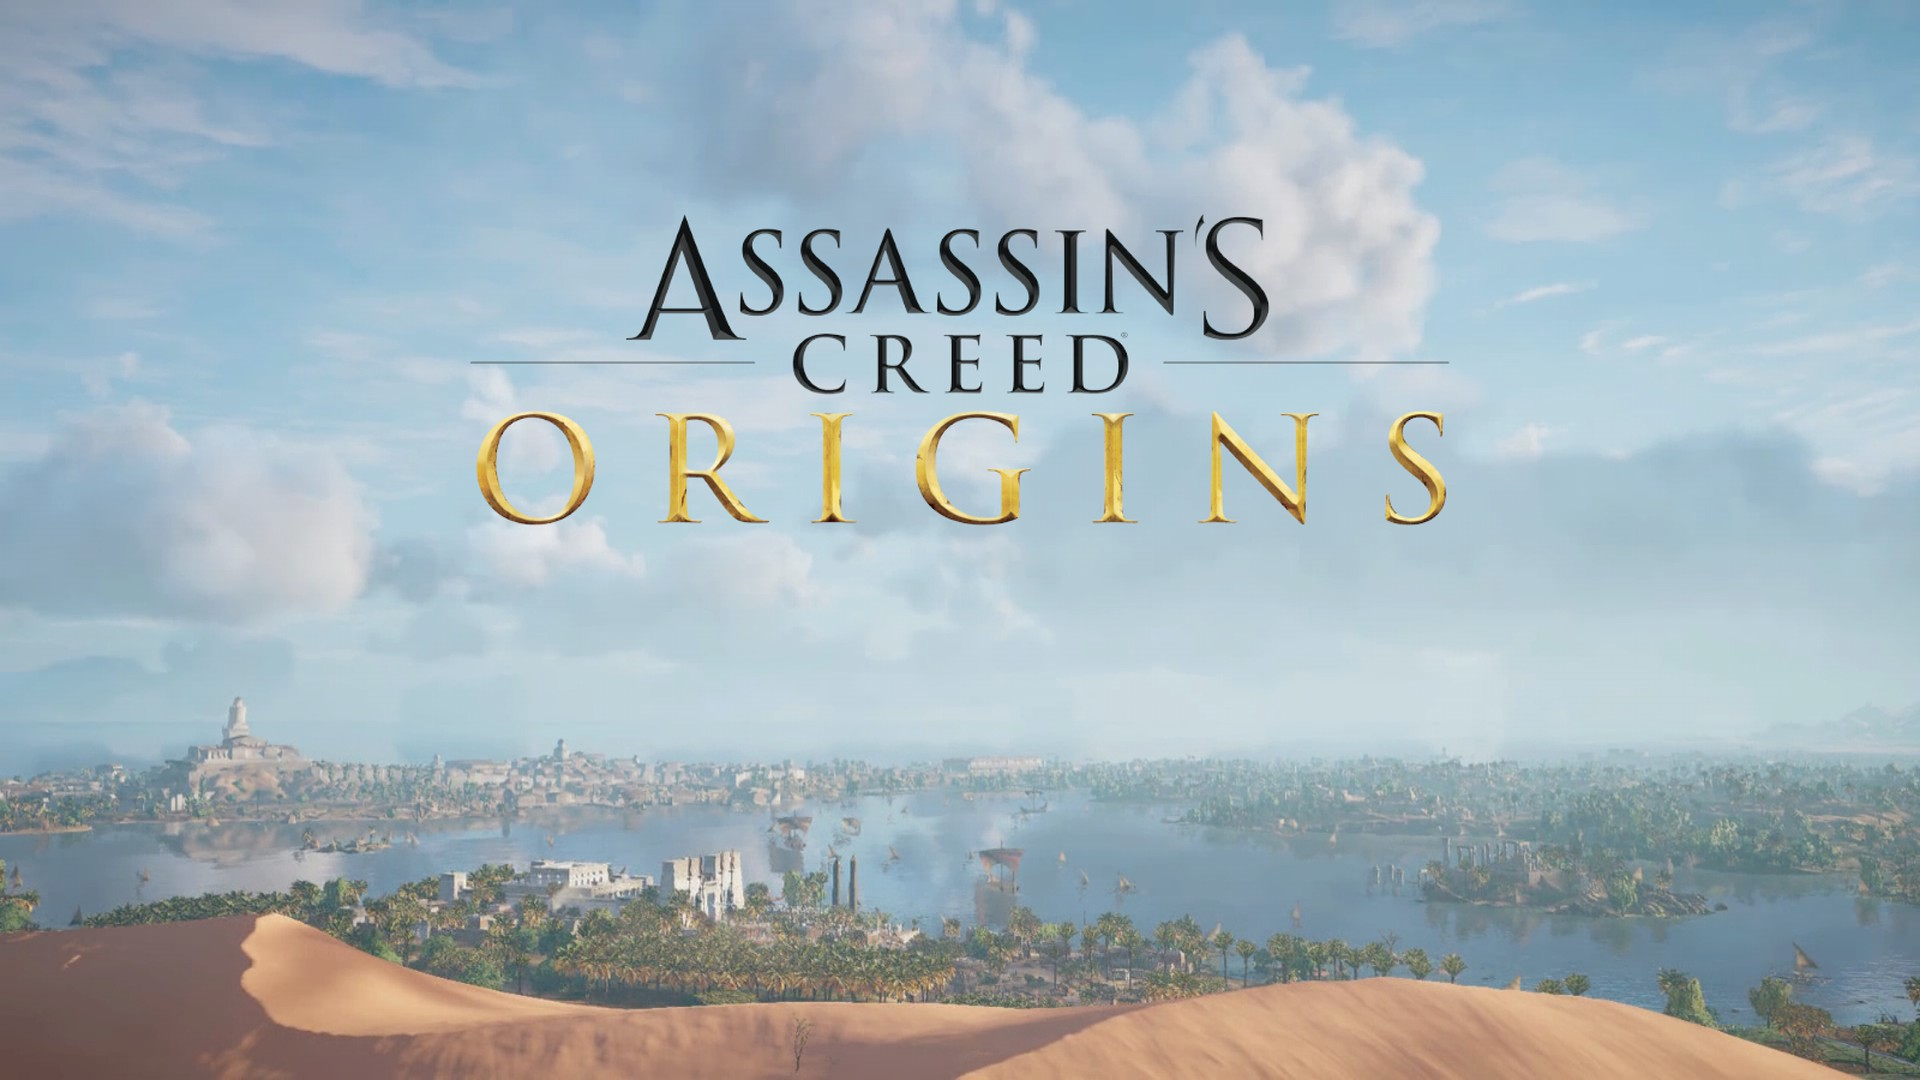 Assassin's Creed Origins – Cómo lo ve un historiador